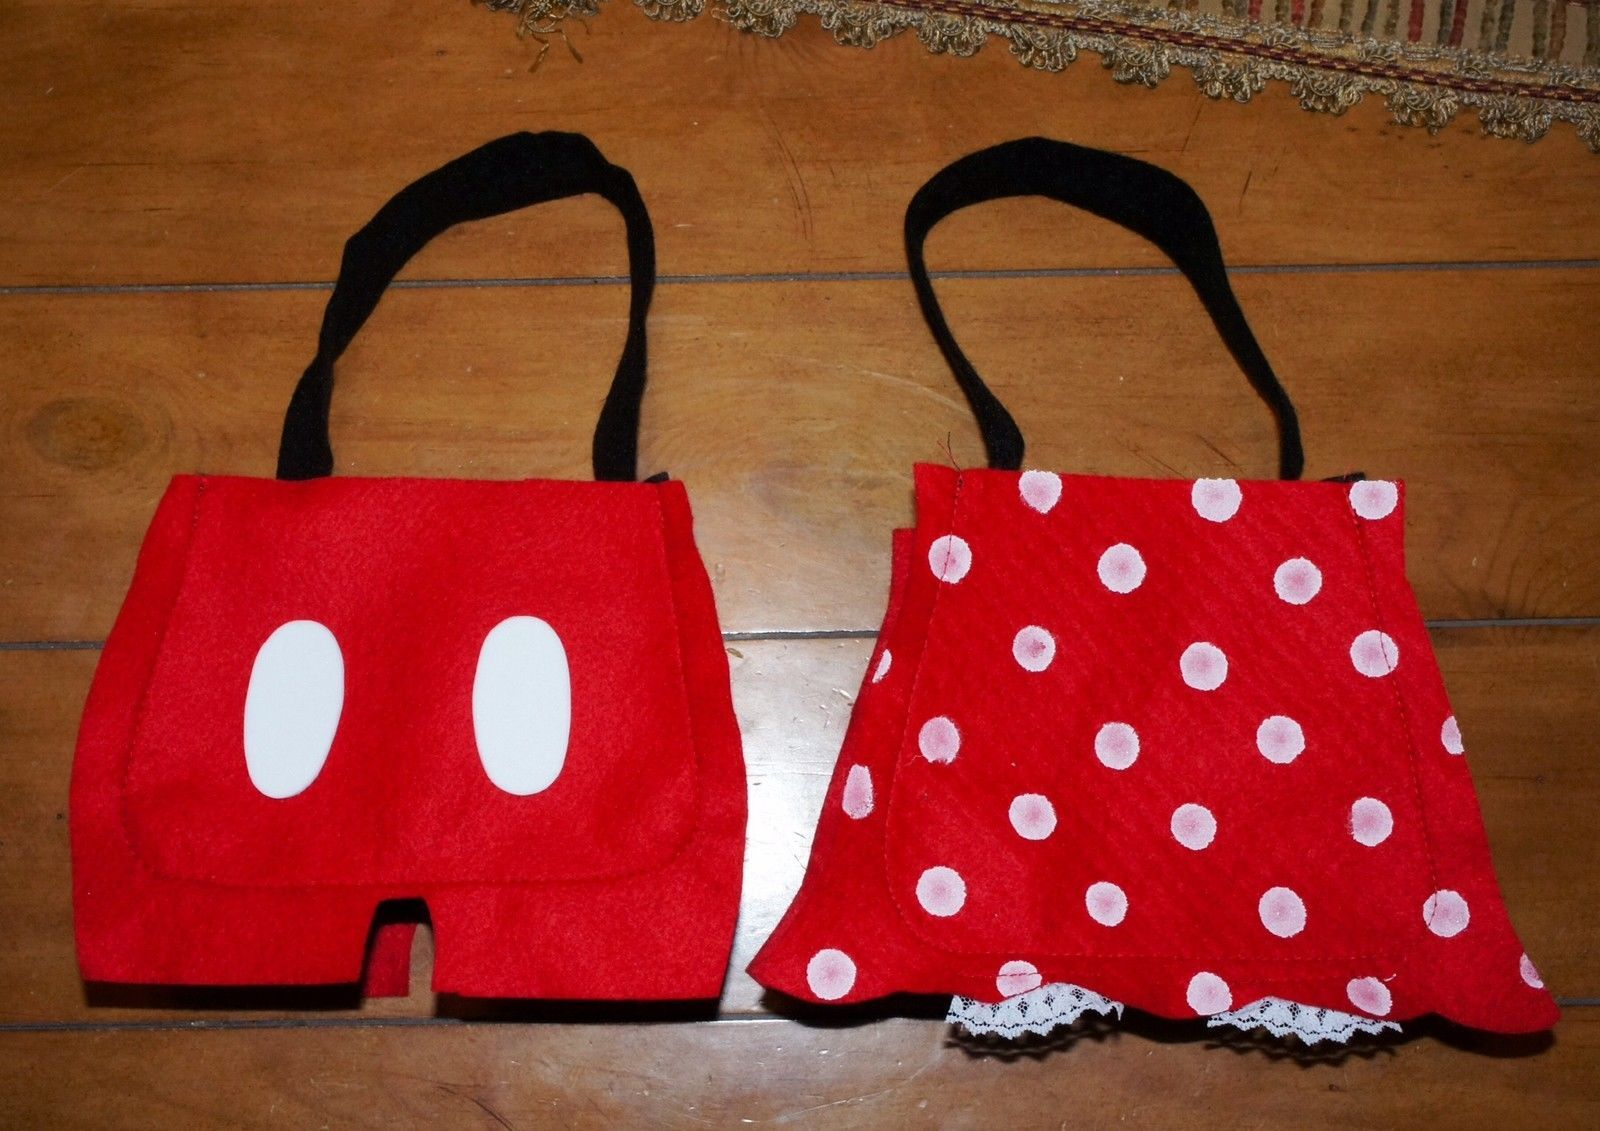 Mickey  Minnie Mouse handmade party bags favors red polka dots lot picclick.com